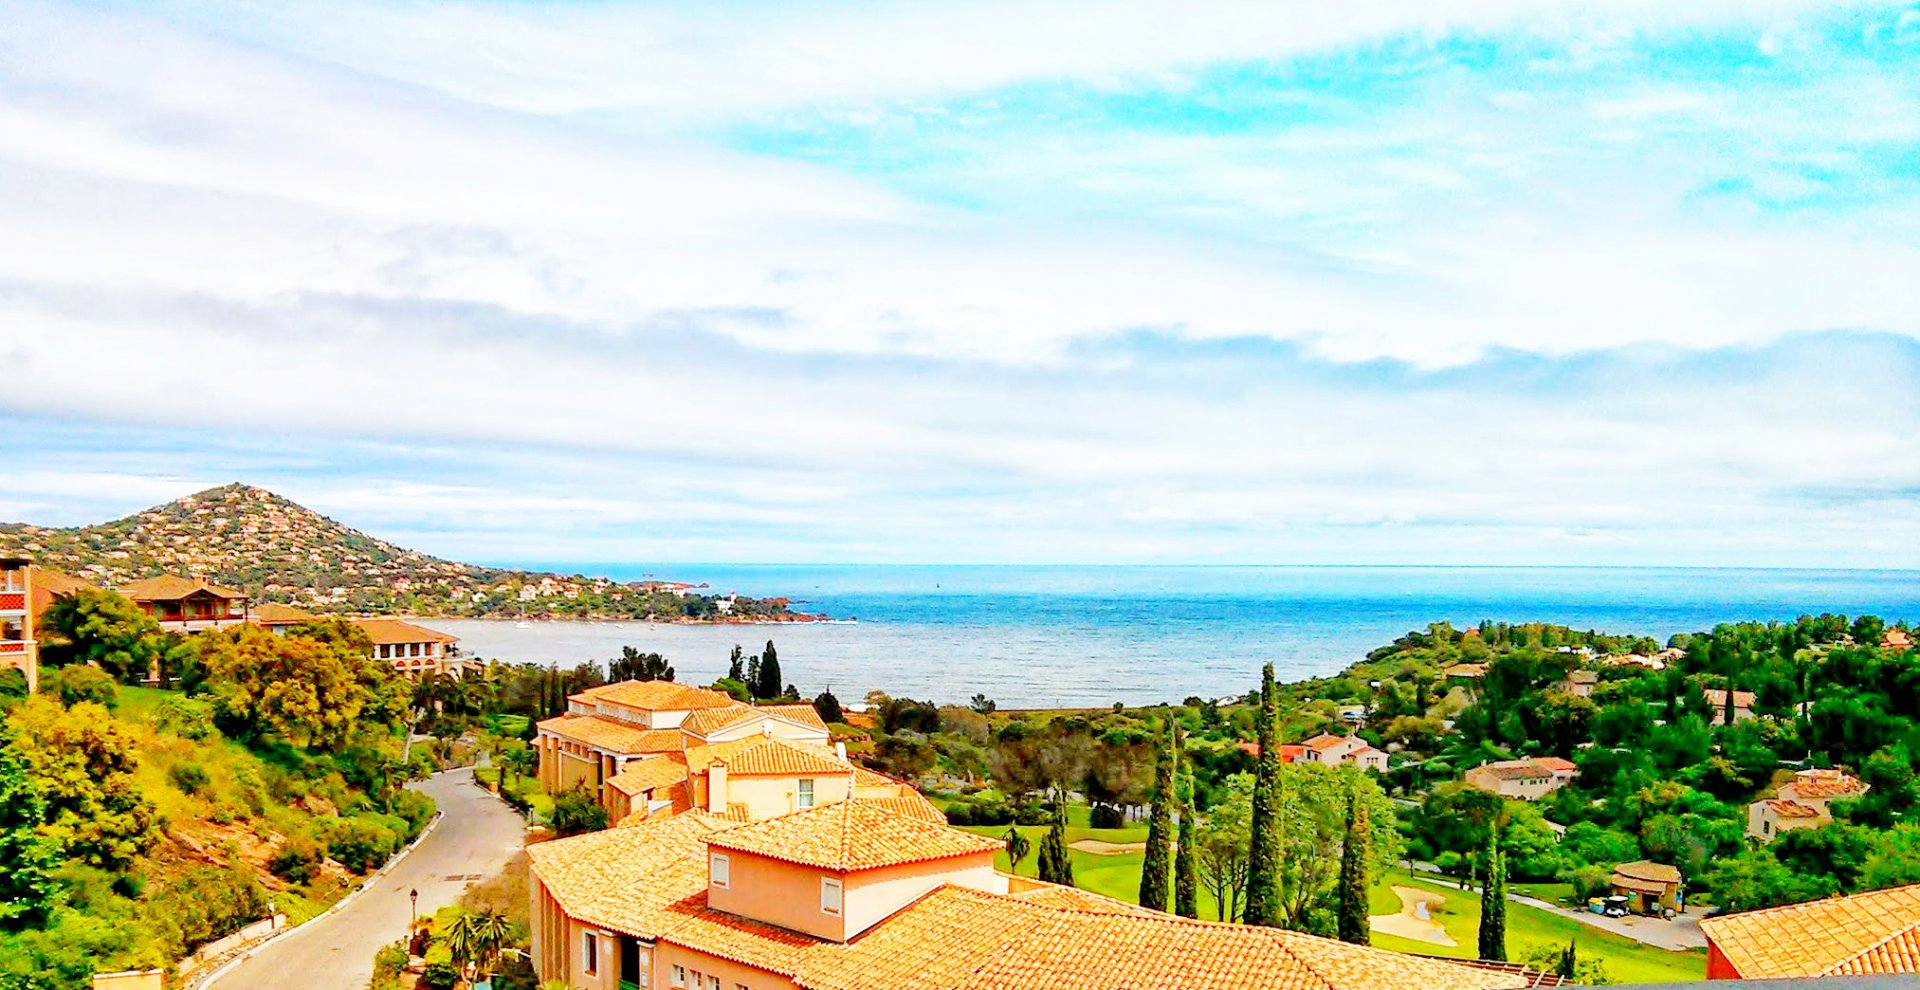 The view from Cap Esterel's apartment